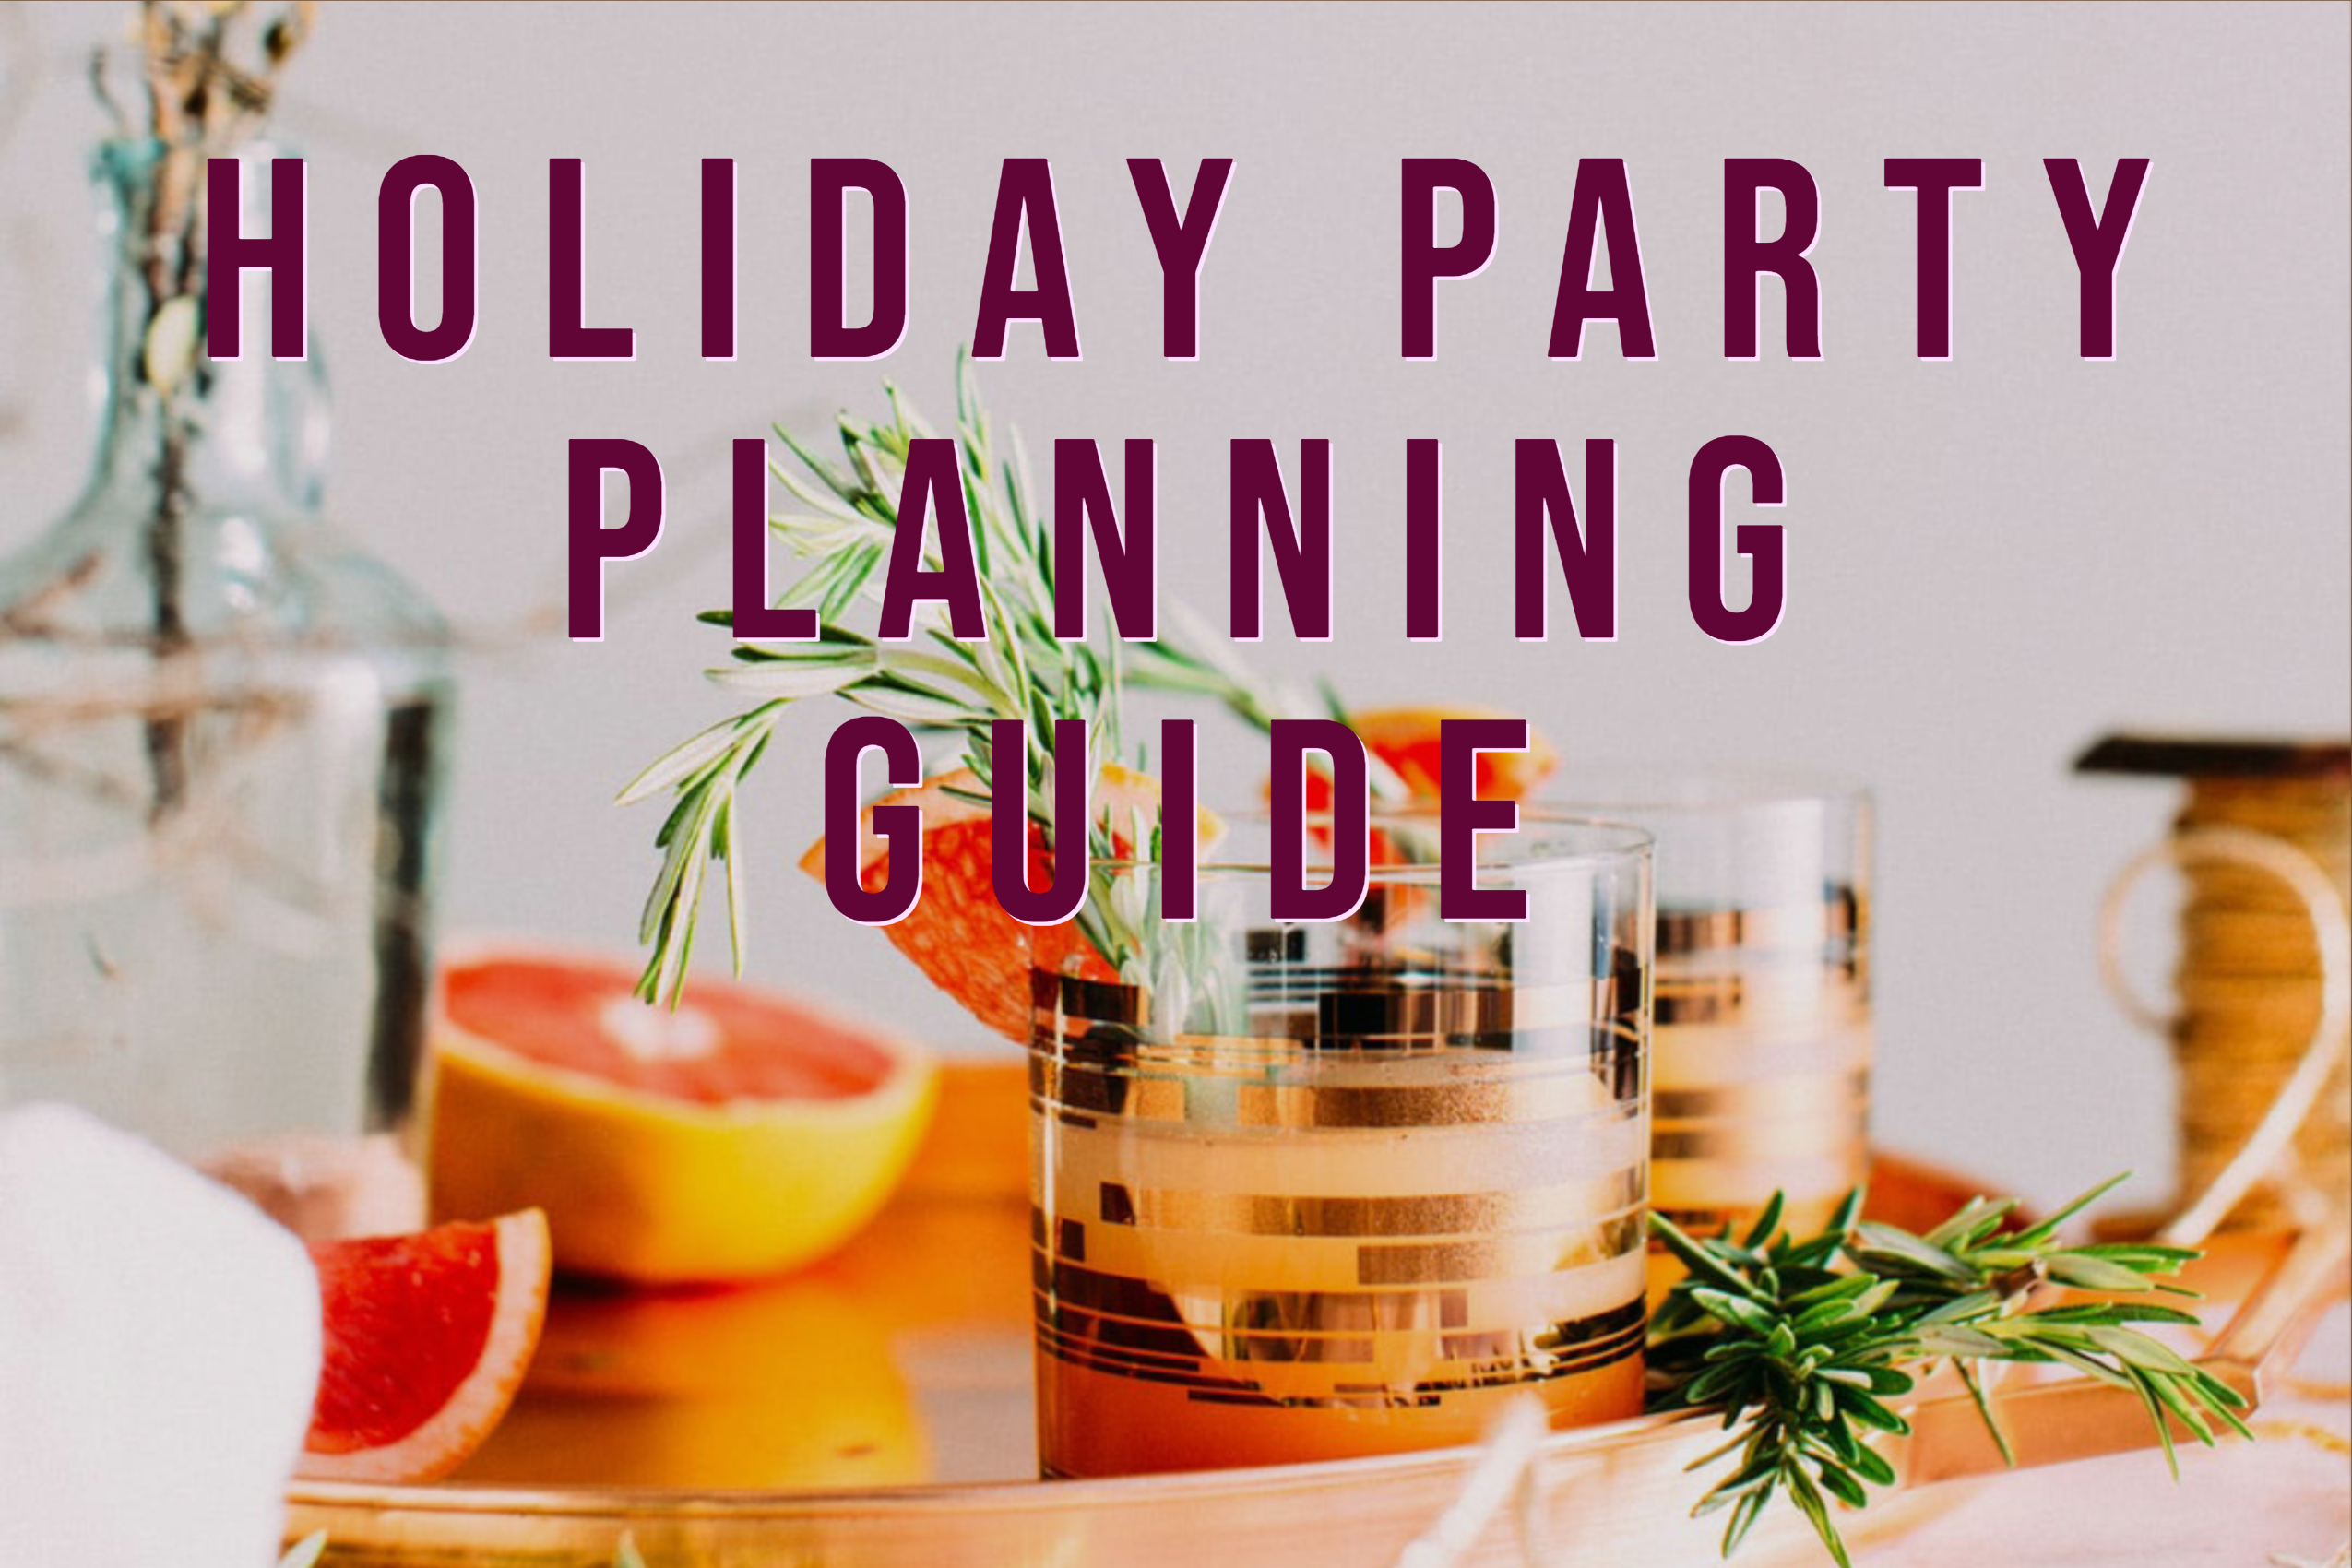 Newsletter holiday planning guide image